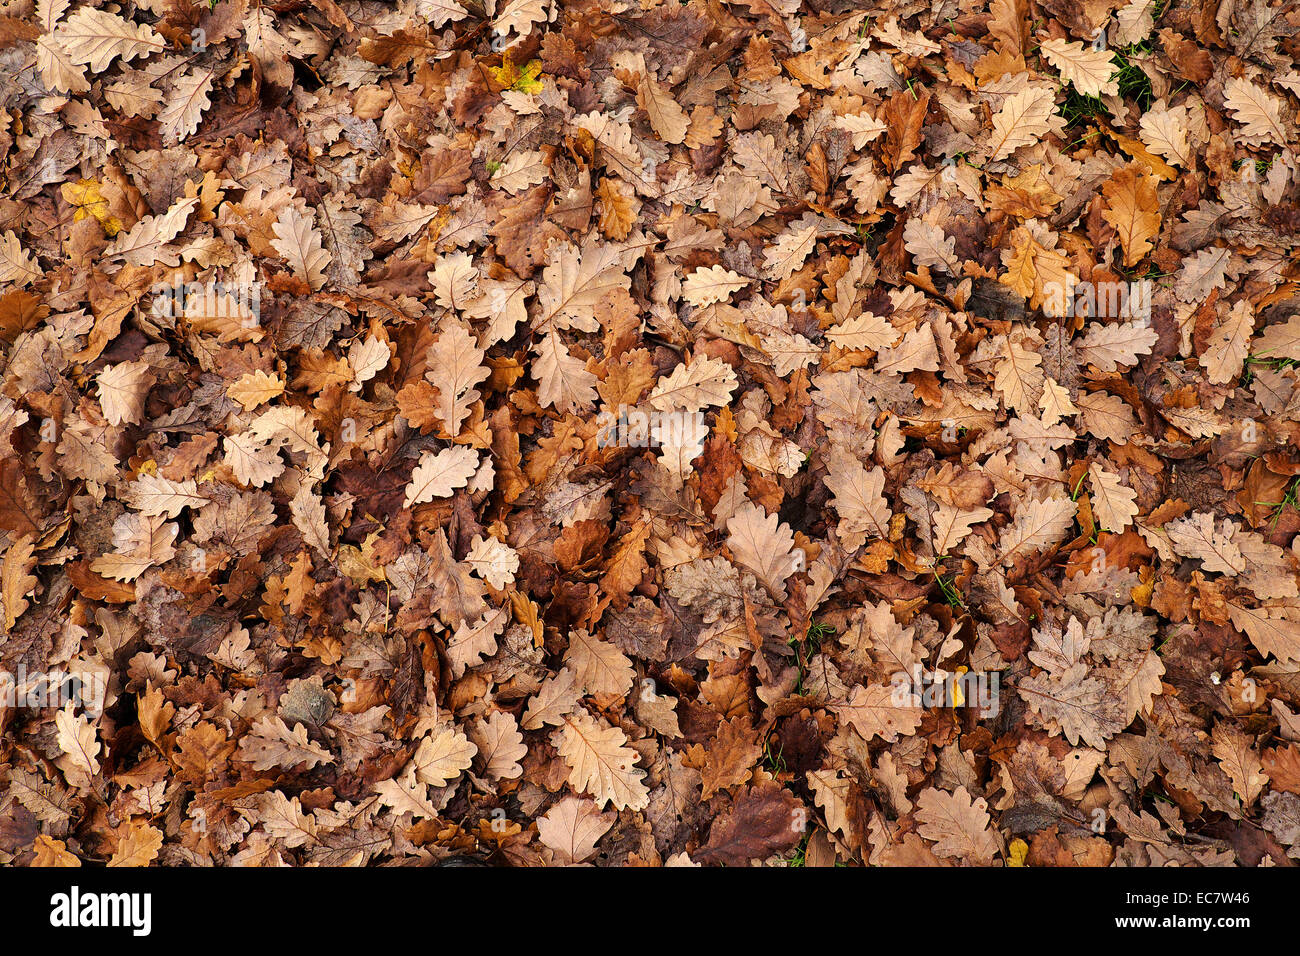 A carpet of oak leaves in Autumn. - Stock Image